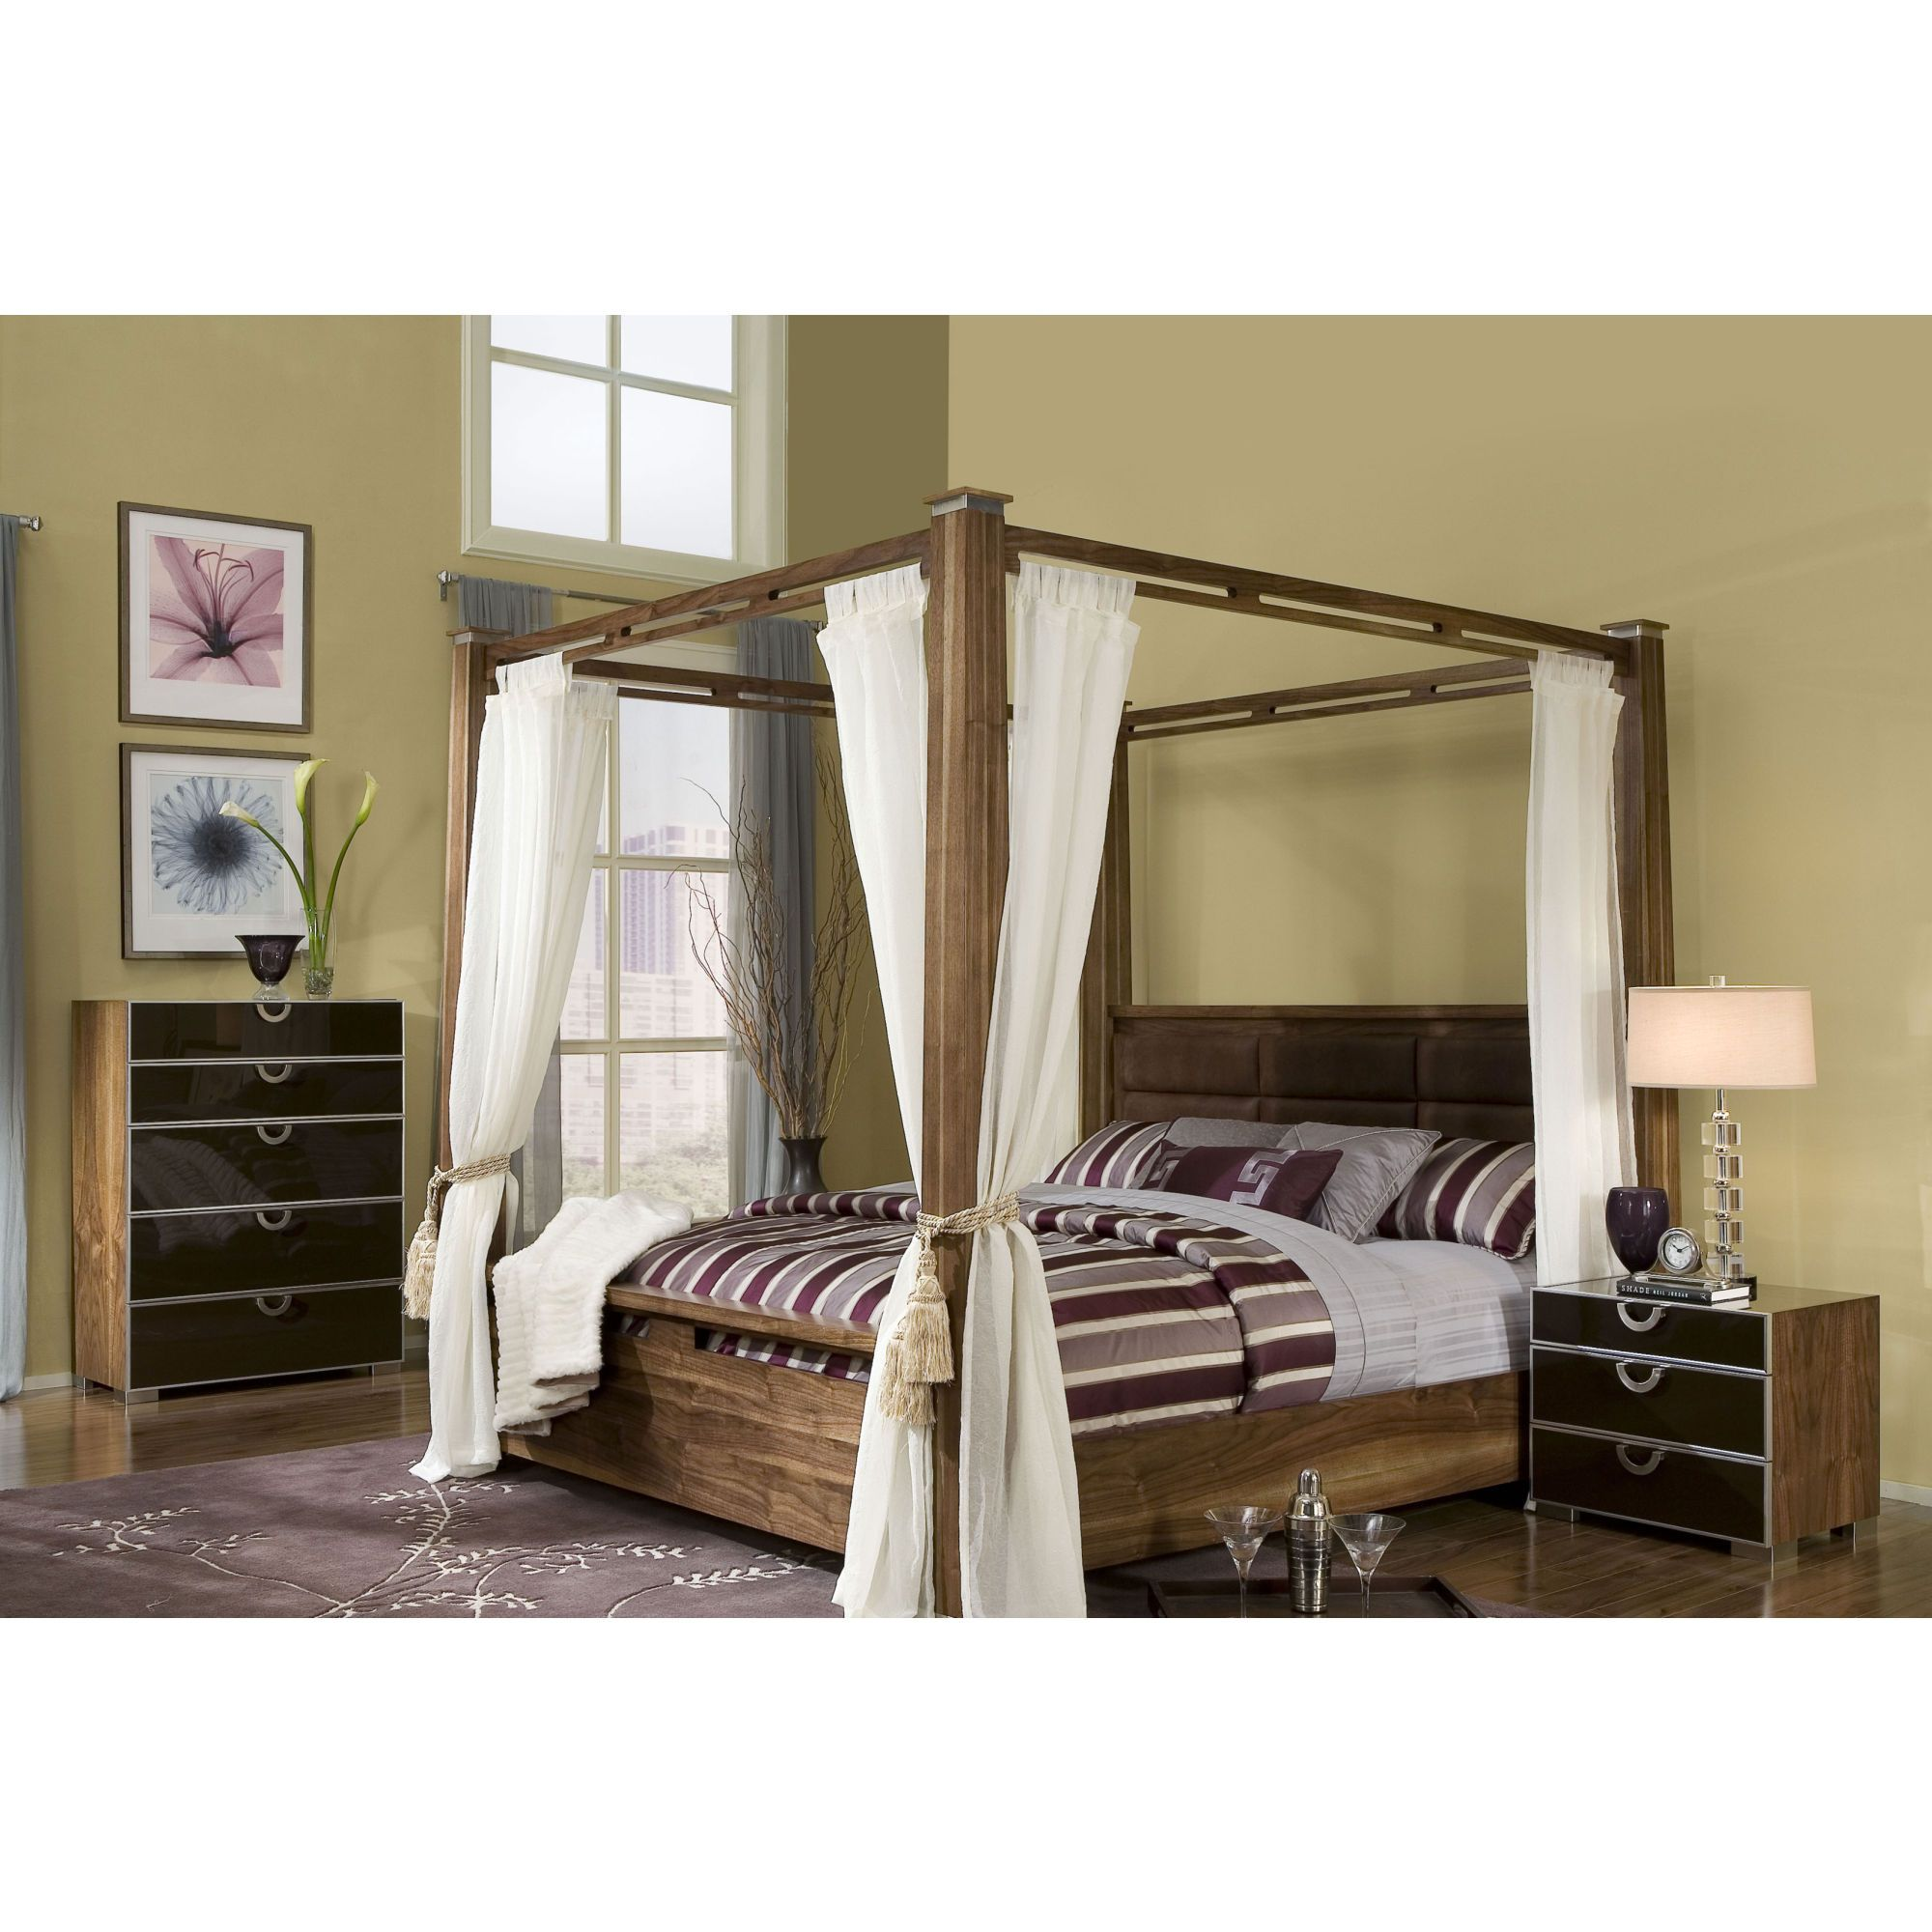 I like modern takes on canopies Bed design, Bedroom